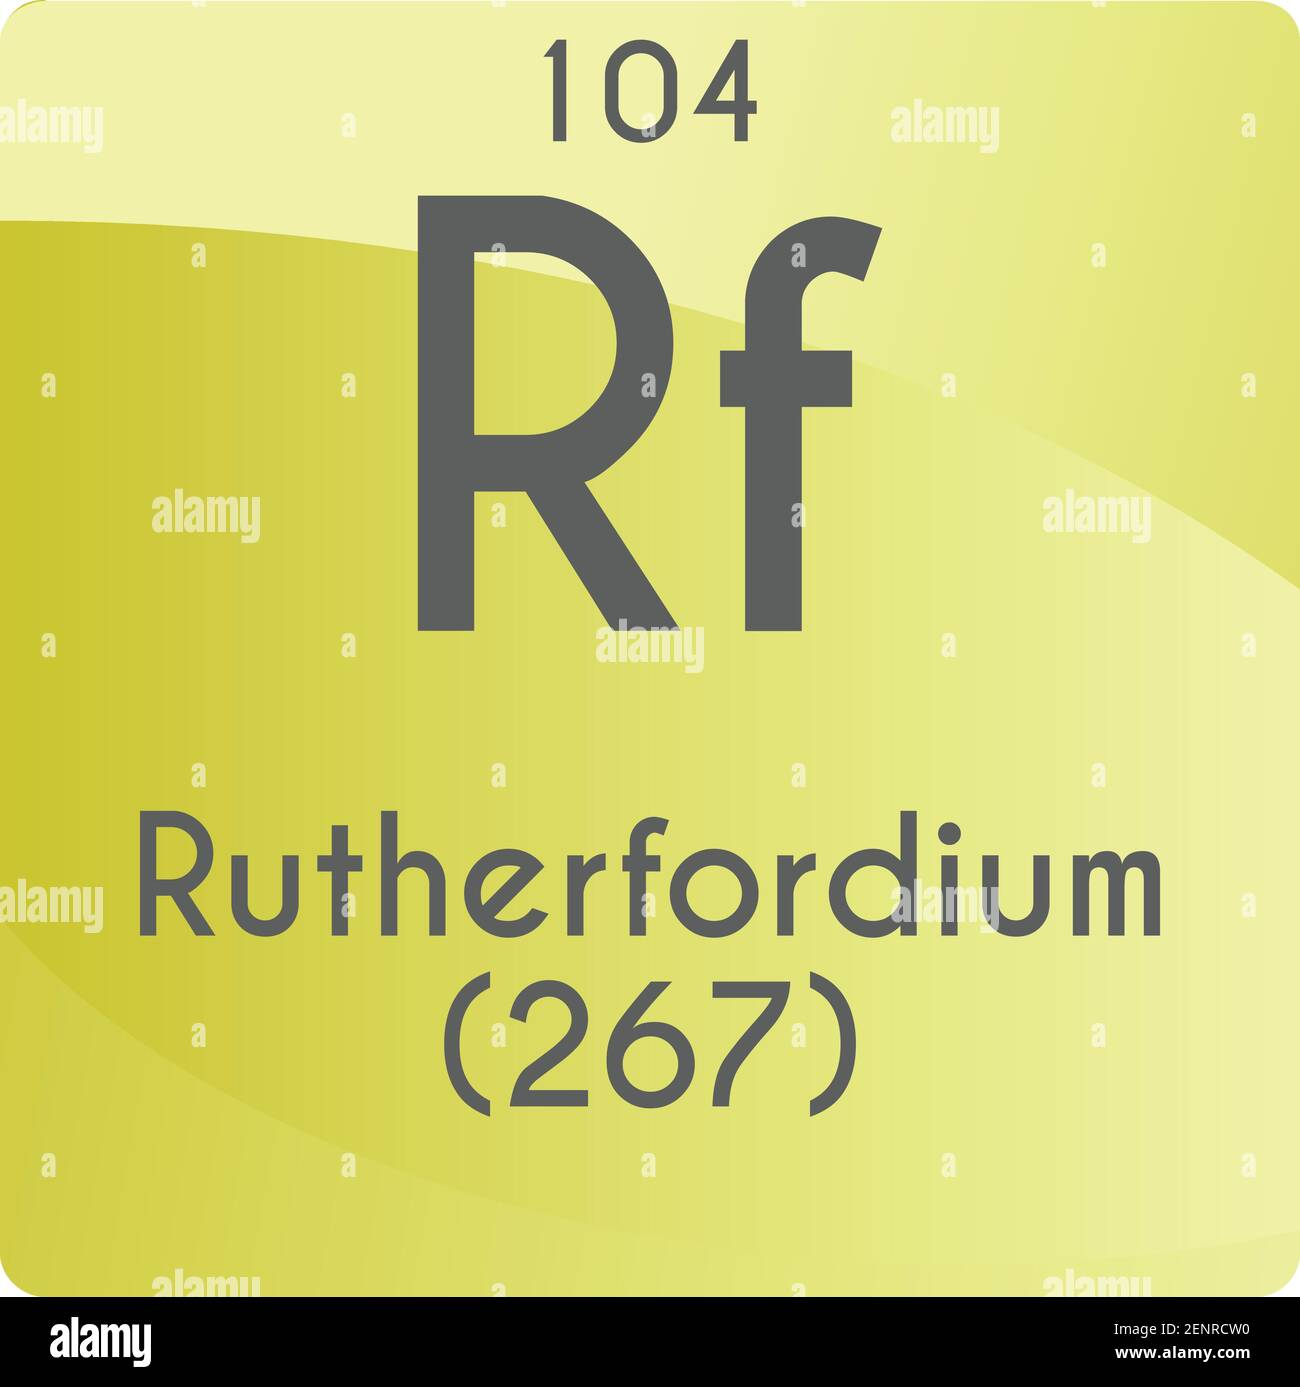 Rf Rutherfordium Transition metal Chemical Element vector illustration diagram, with atomic number and mass. Simple gradient flat design For education Stock Vector